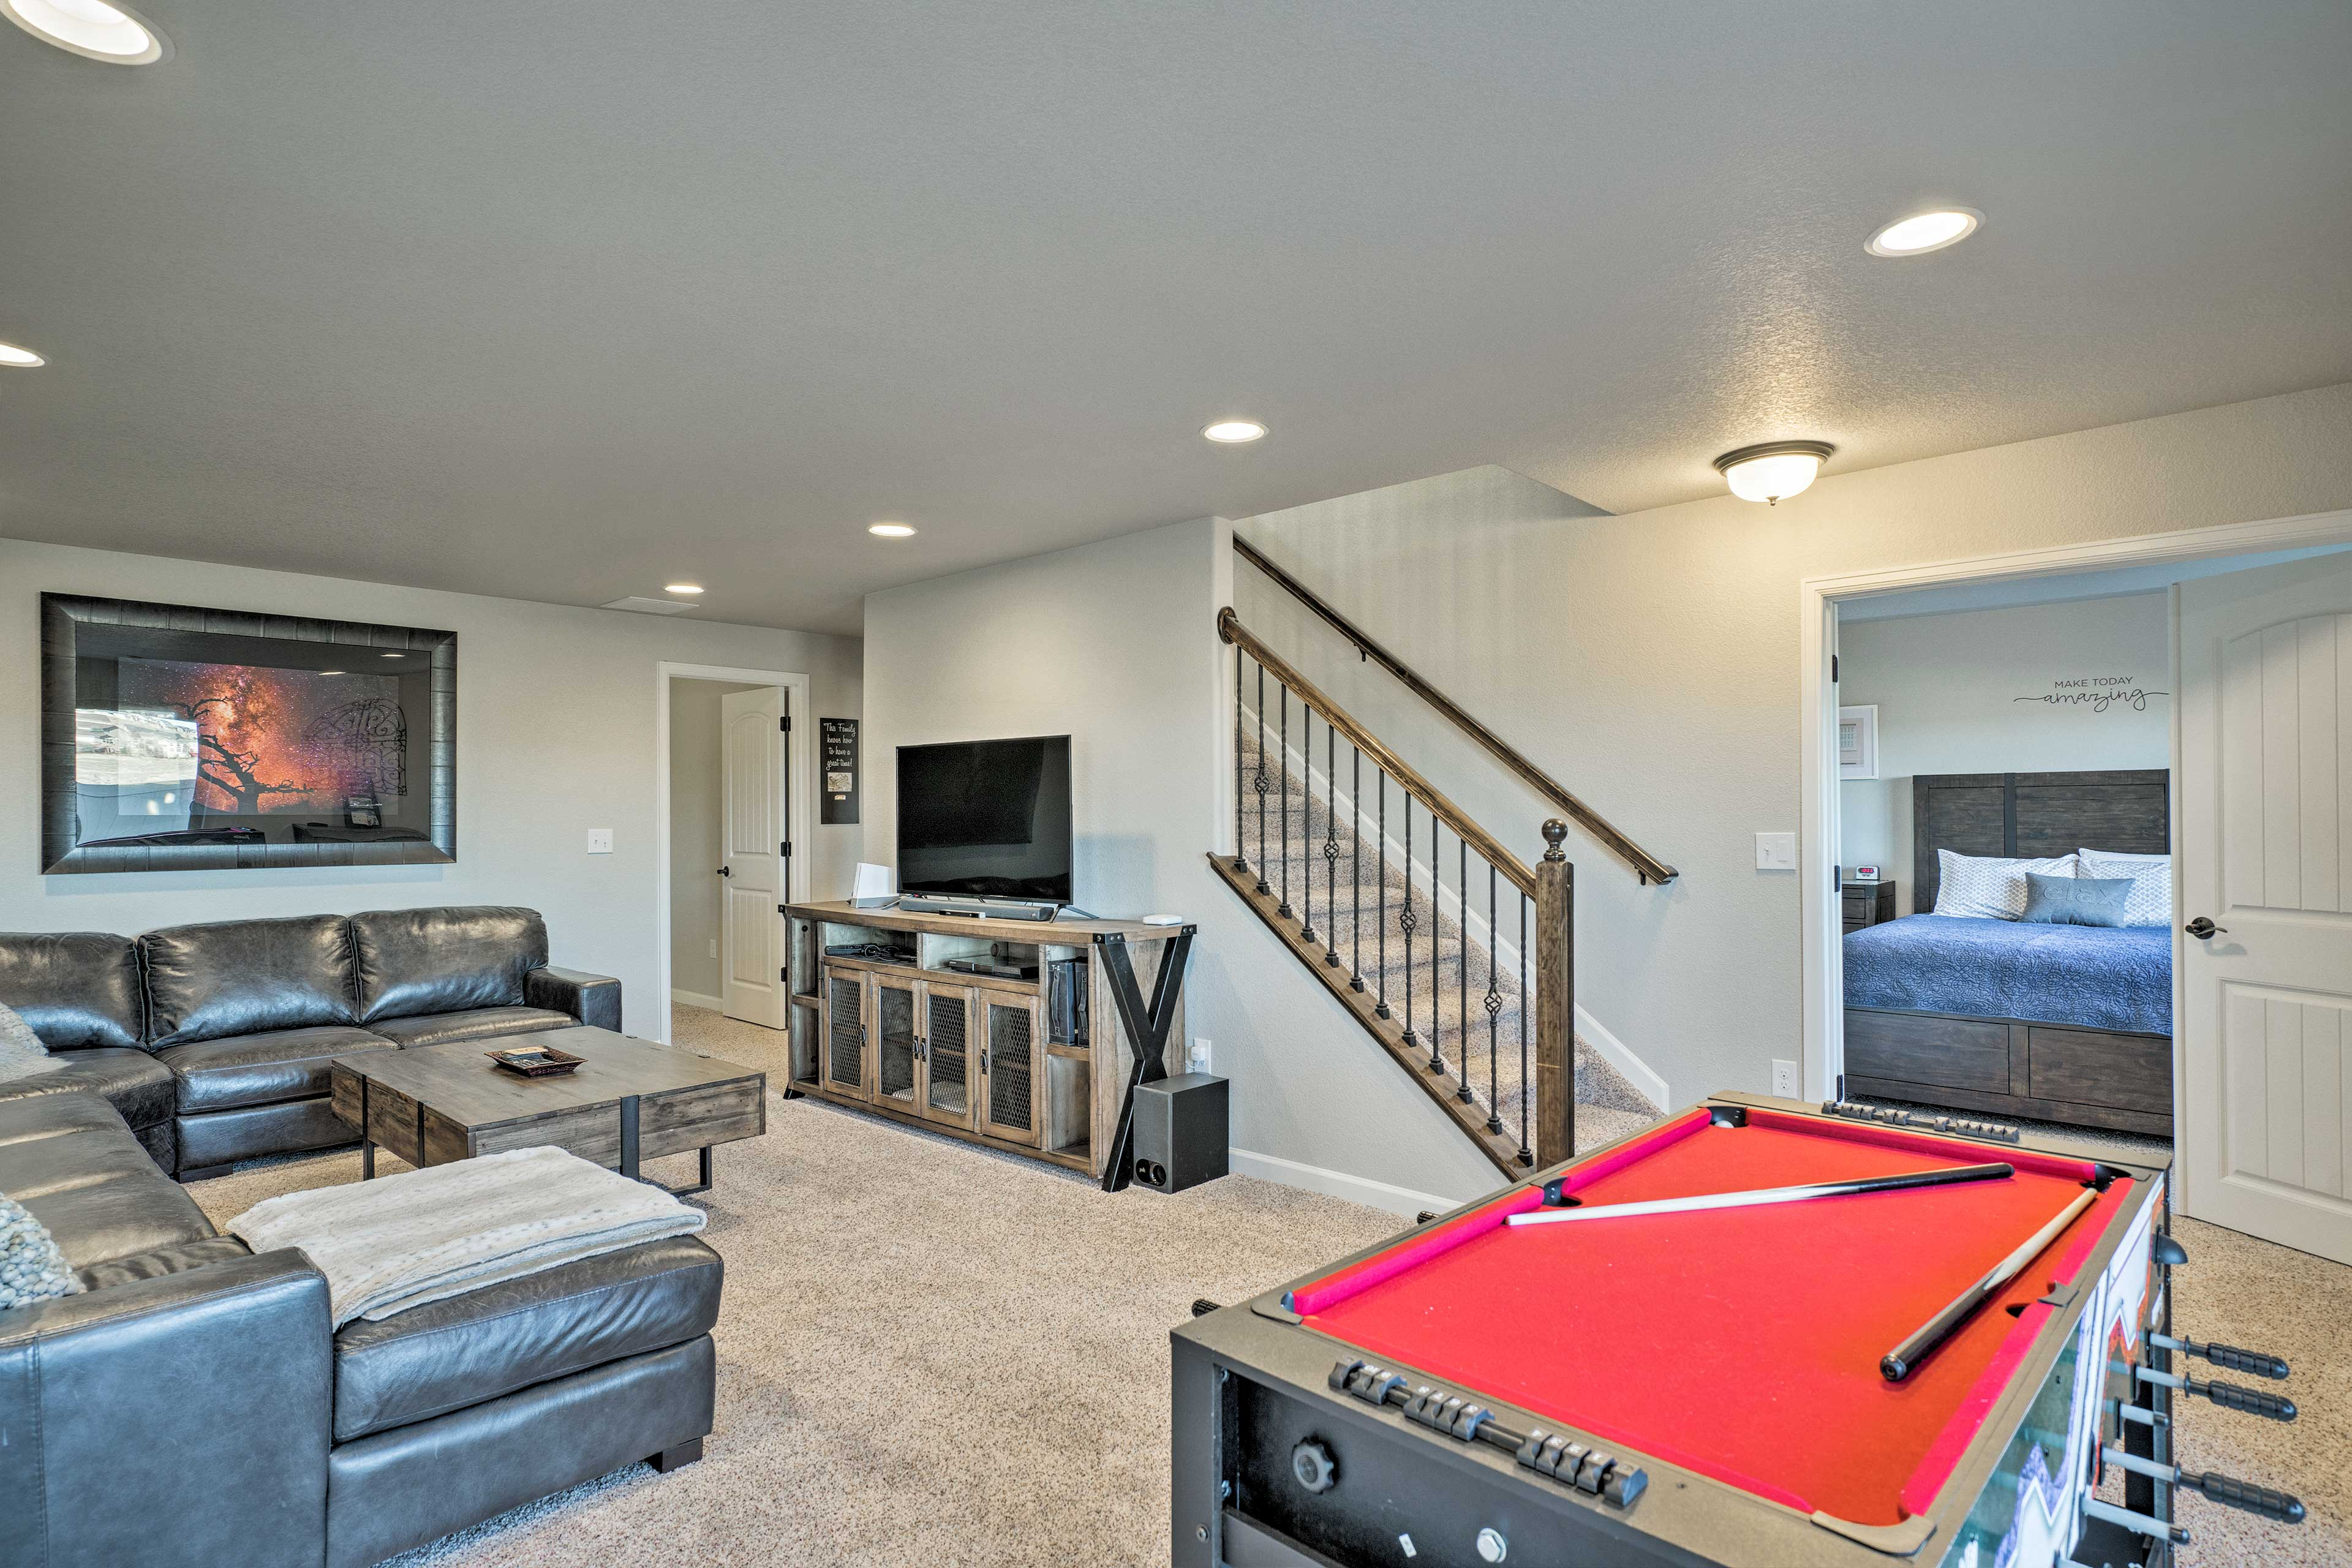 This modern townhome is complete with a game room, balcony, & mountain views!